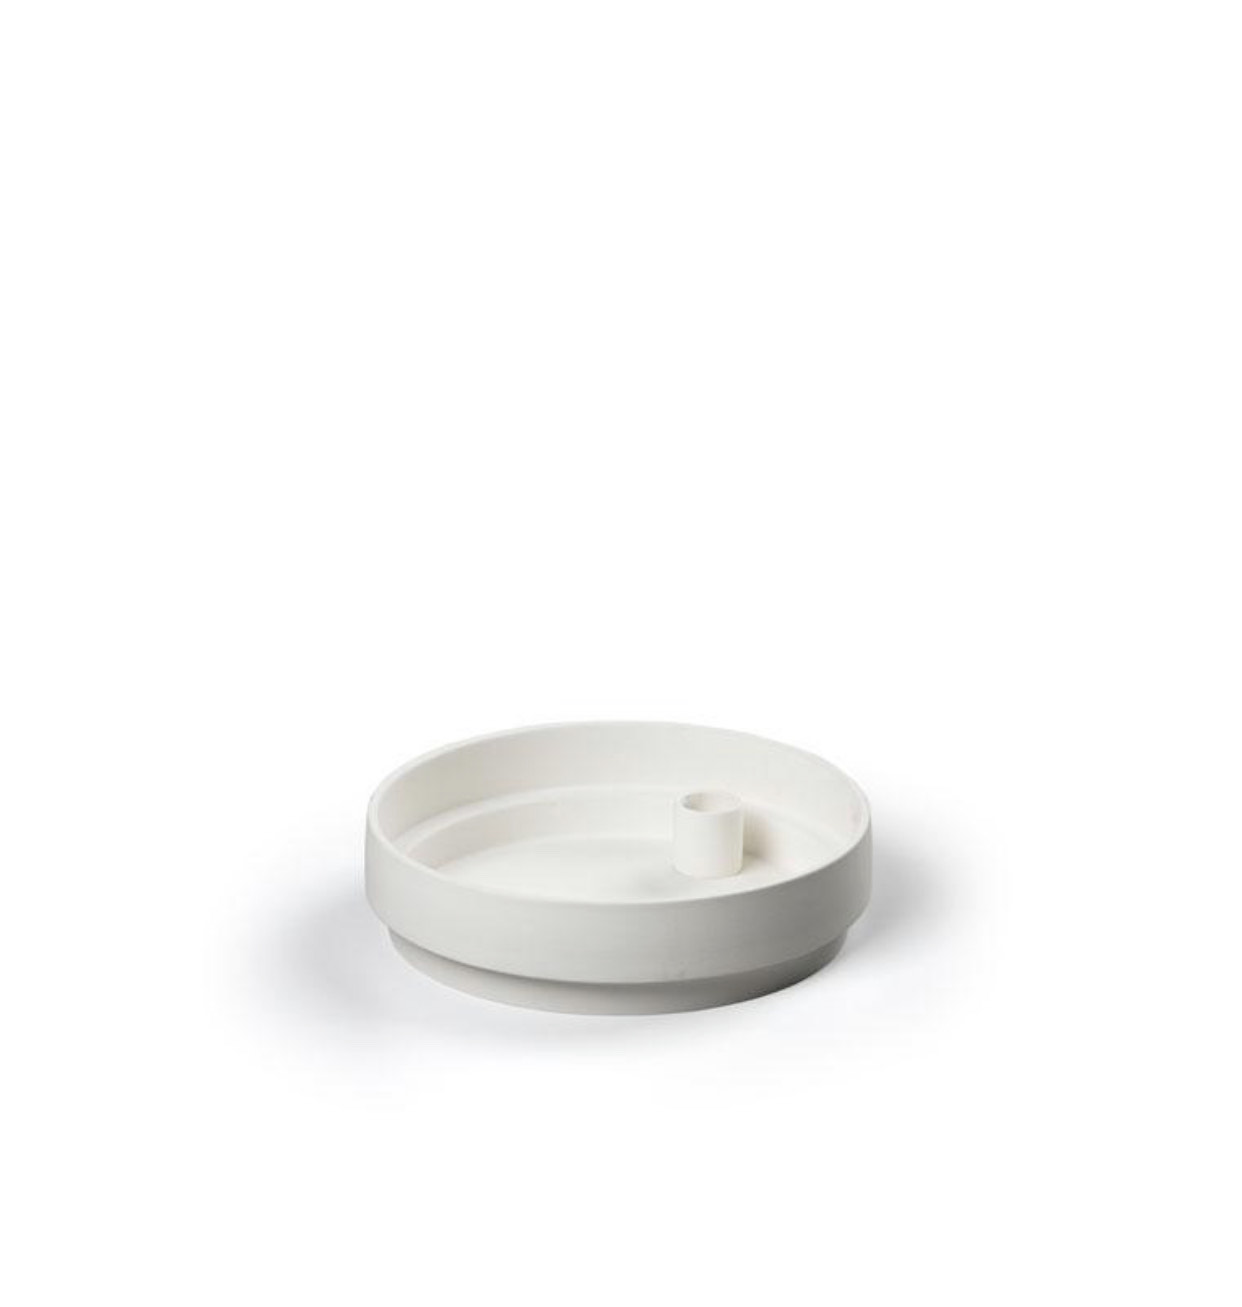 Orbital Step White Candle Holder in Matte Clay - Large